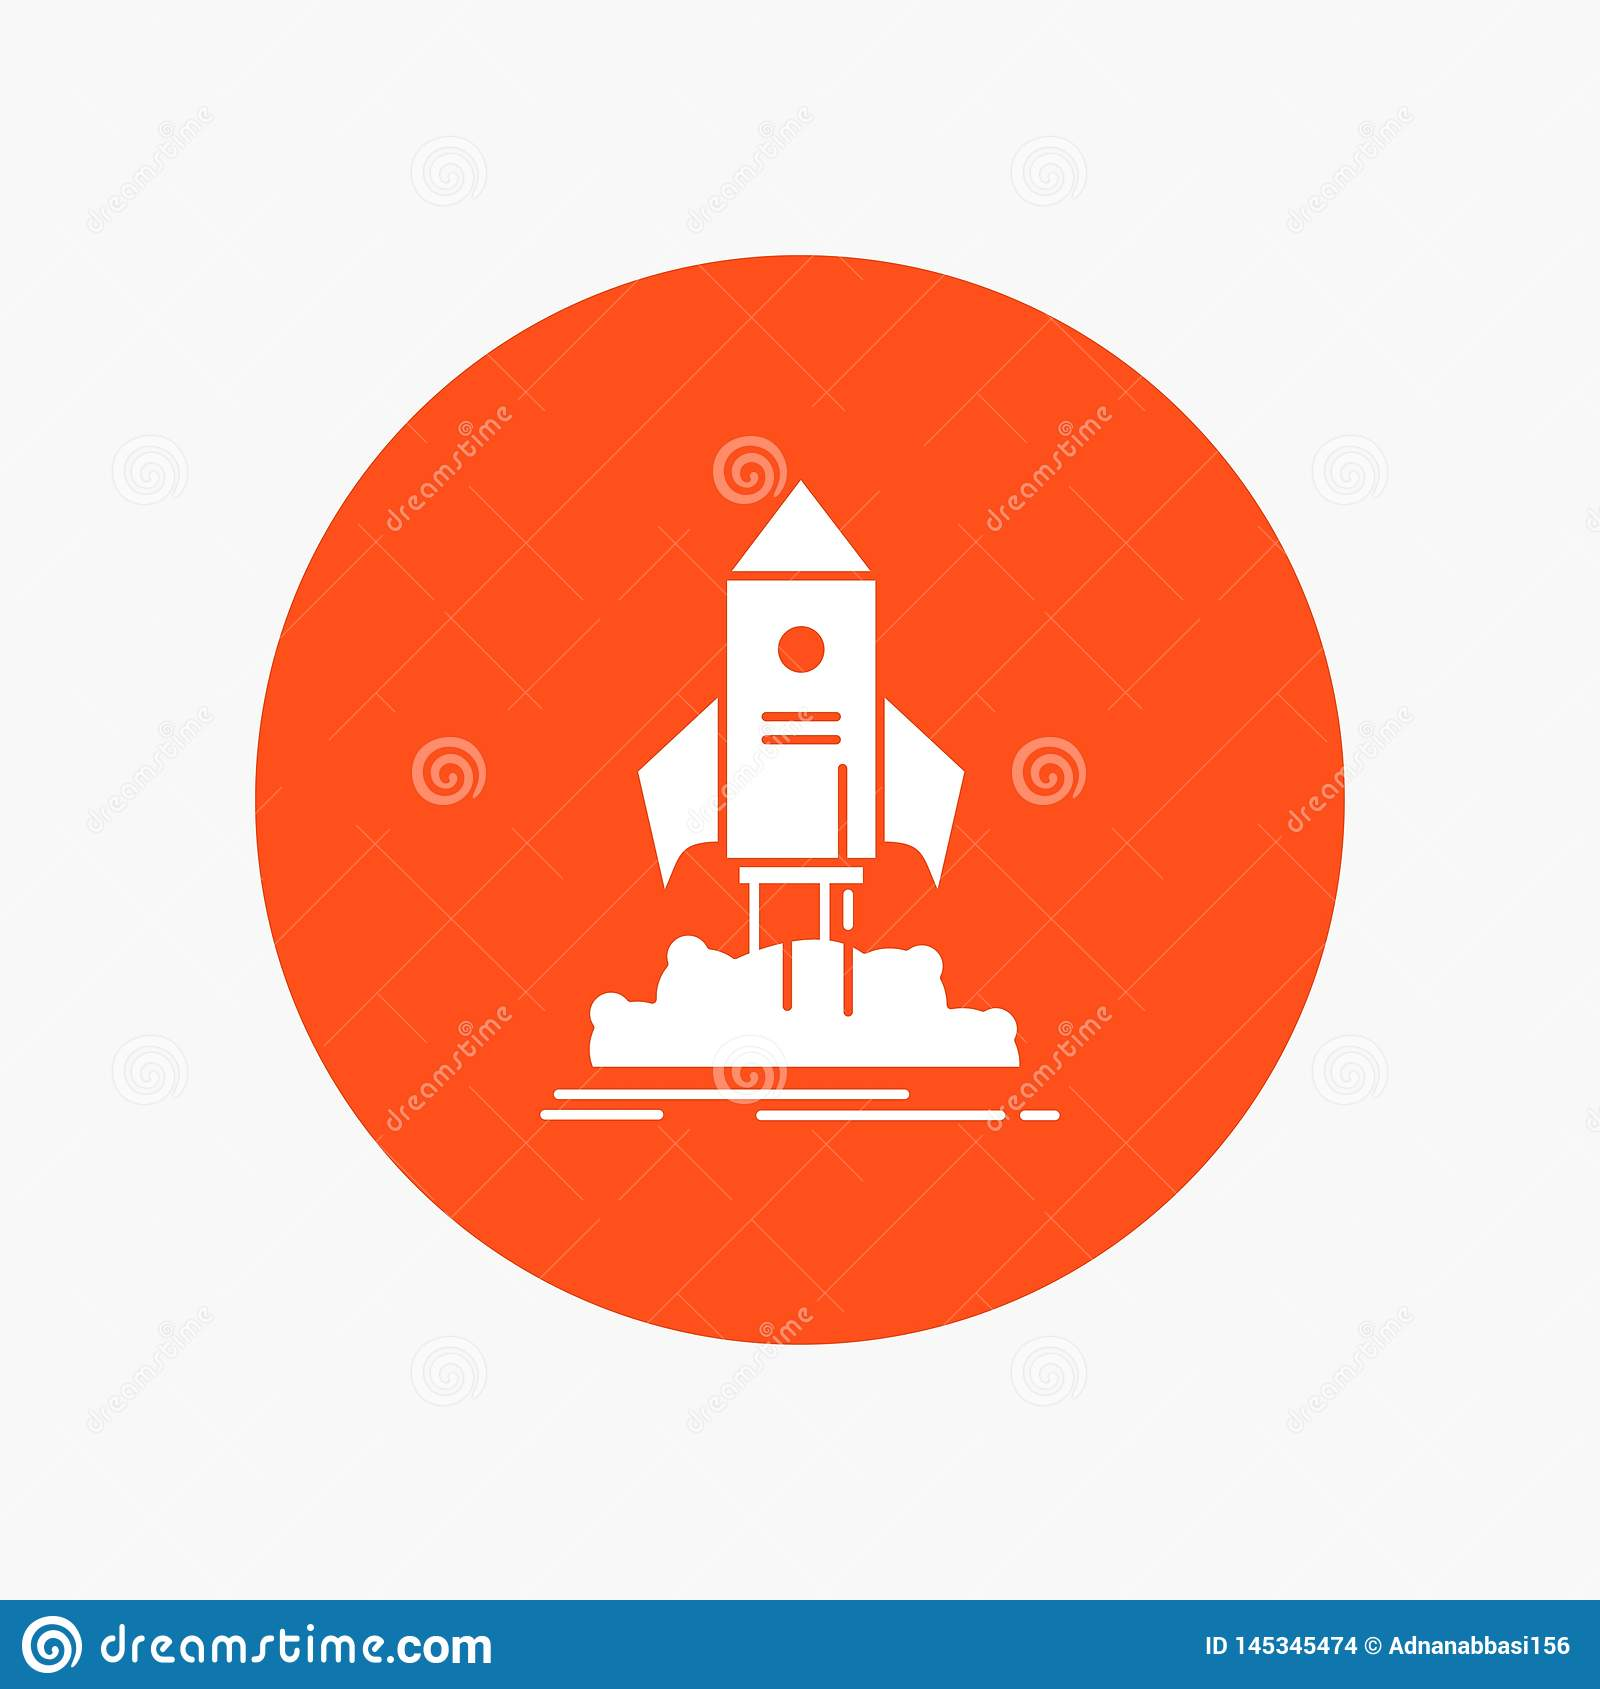 launch, startup, ship, shuttle, mission White Glyph Icon in Circle. Vector Button illustration